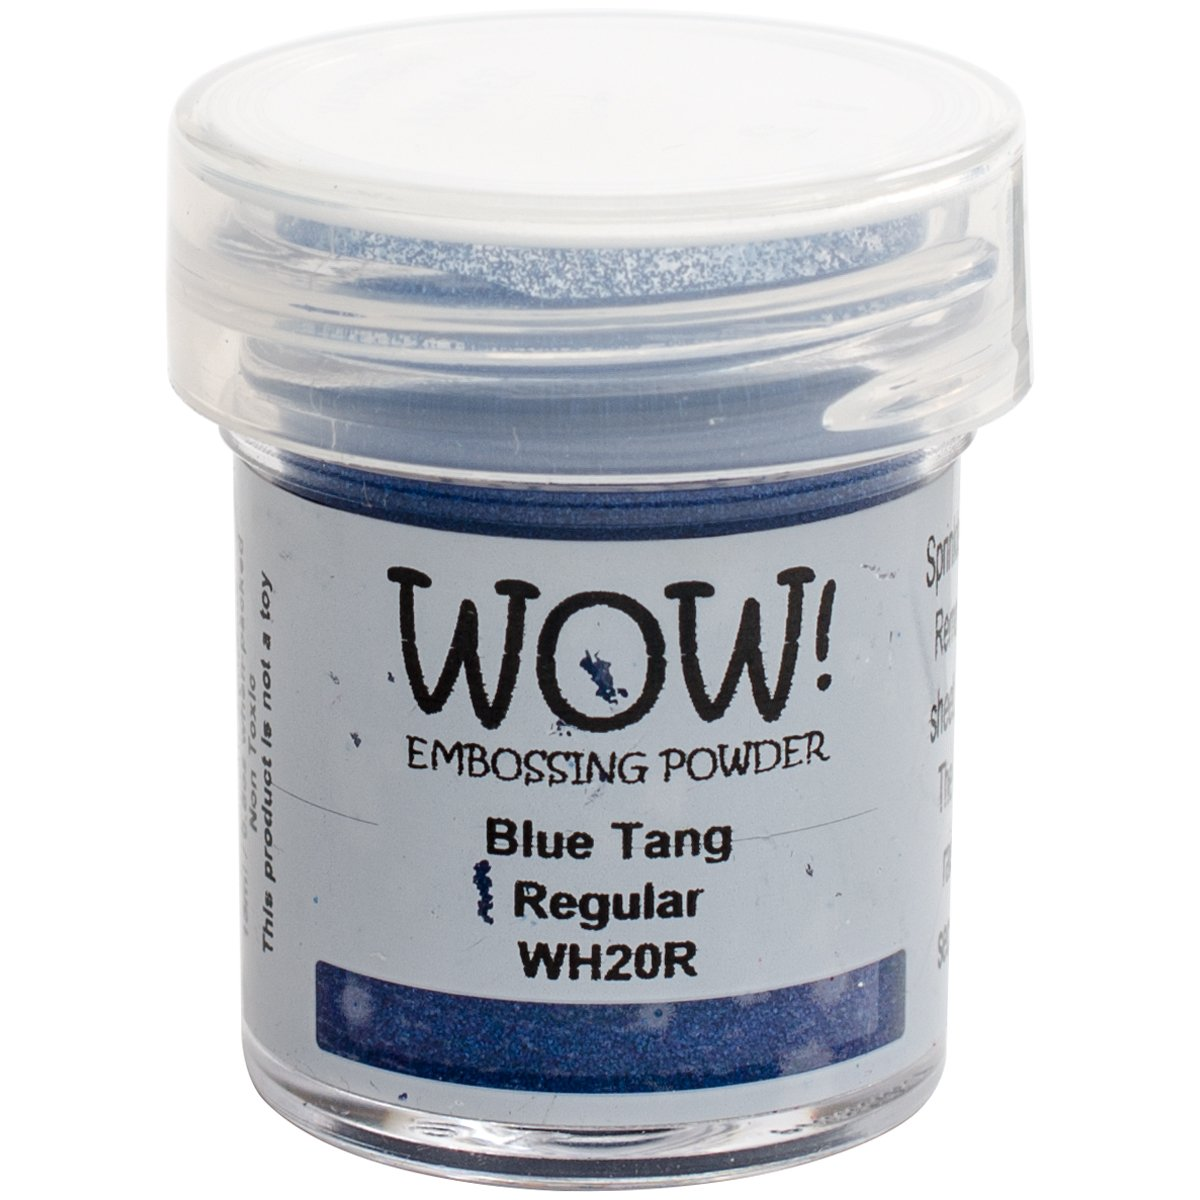 Wow Embossing Powder WH20R Embossing Powder, 15ml, Blue Tang